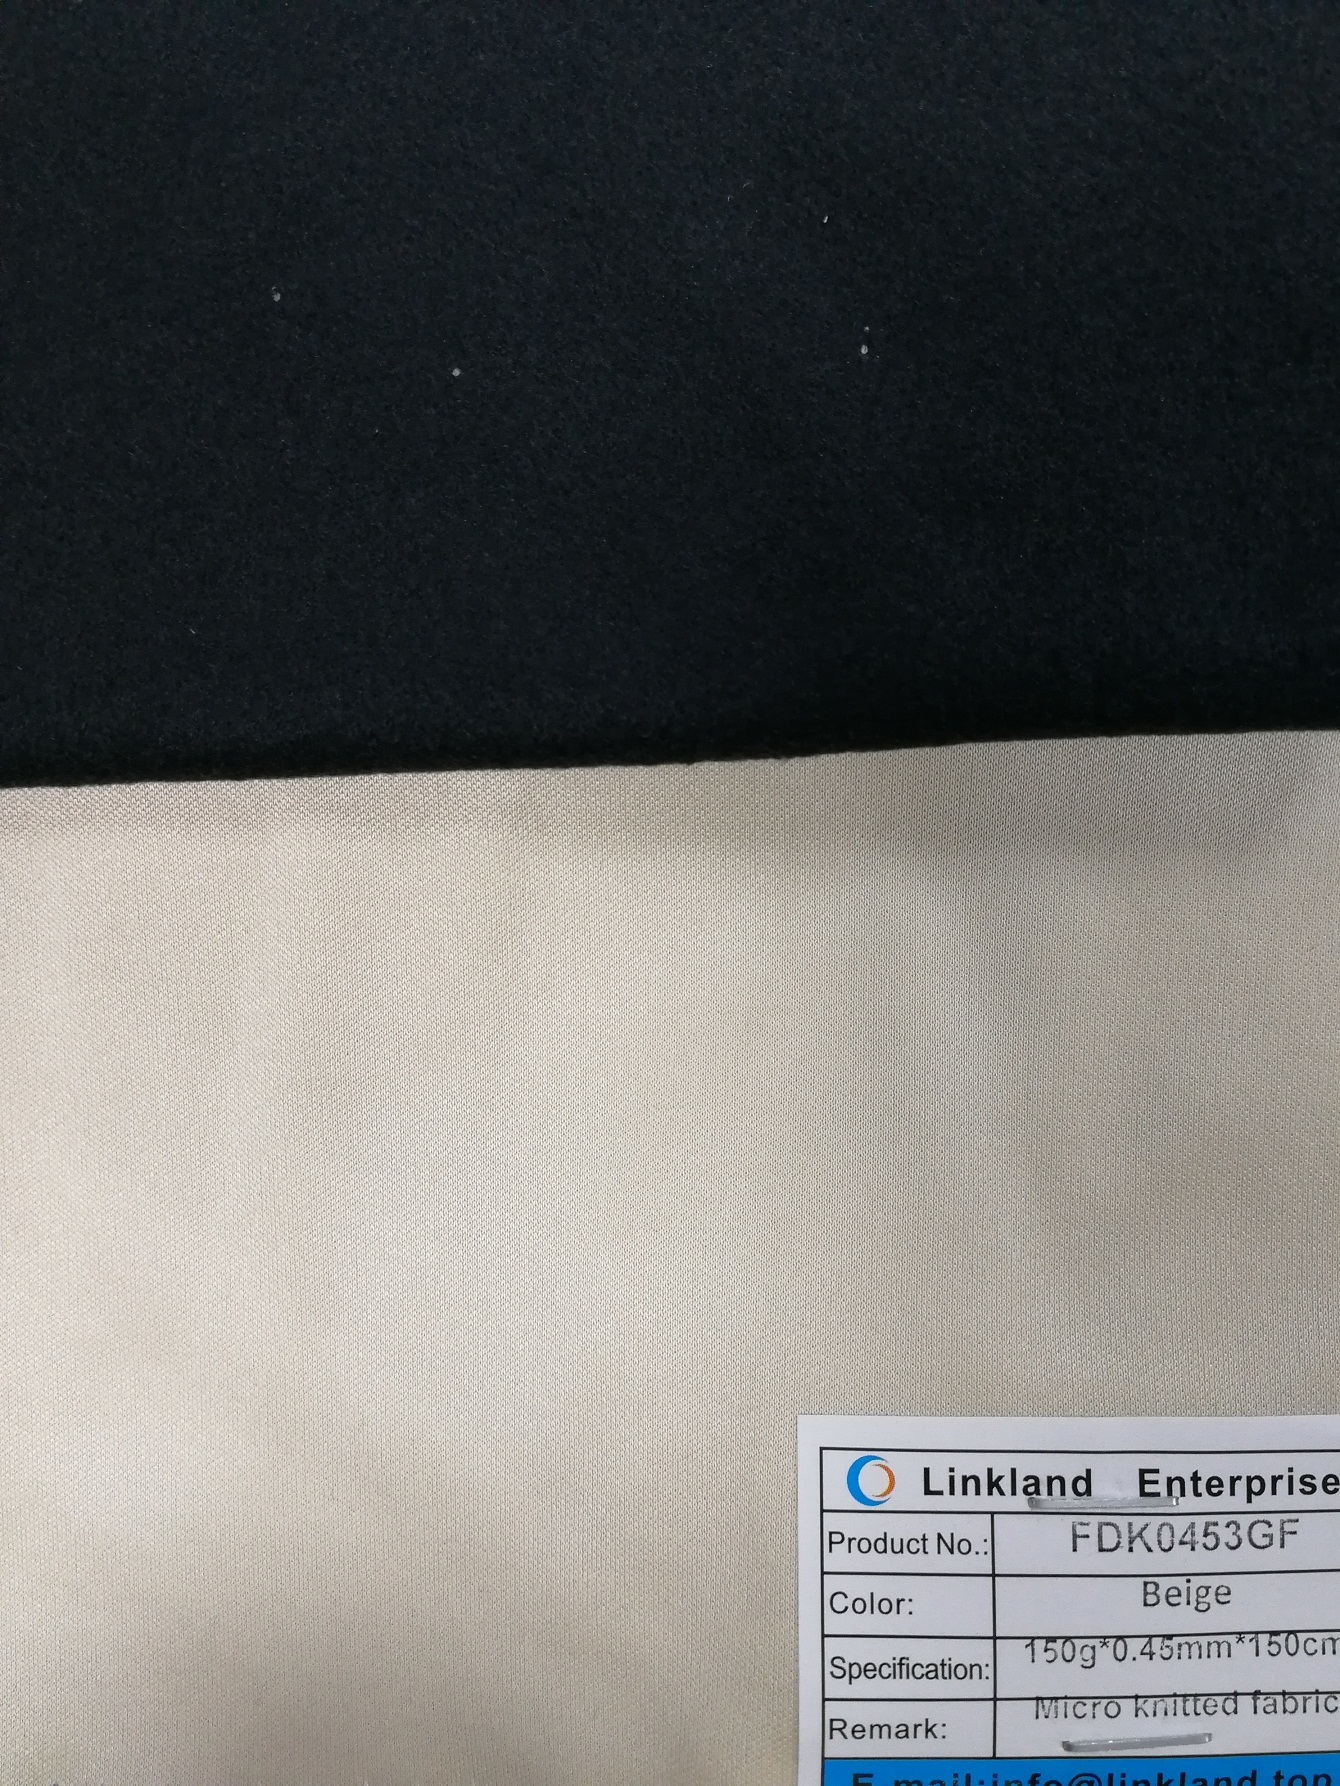 micro knitted fabric for leather backing